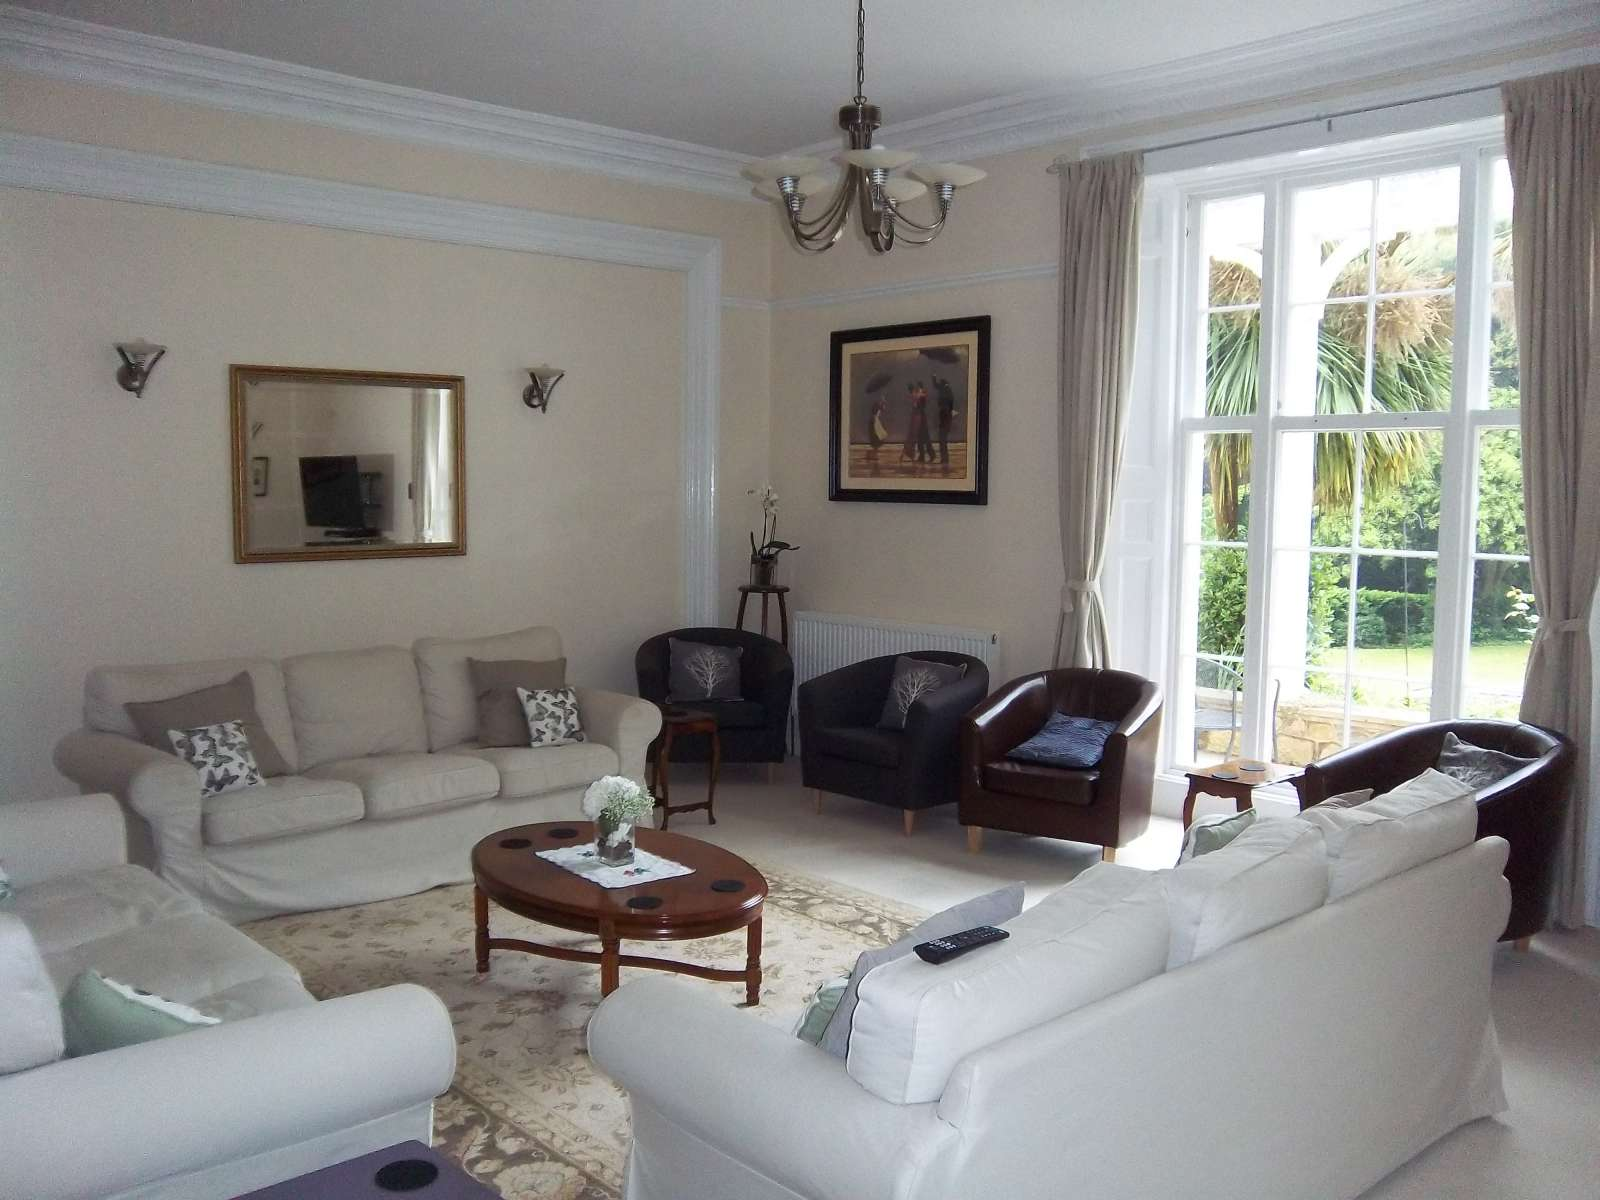 7 Bedroom Sleeps 18 House In Torquay No Booking Fees P25485